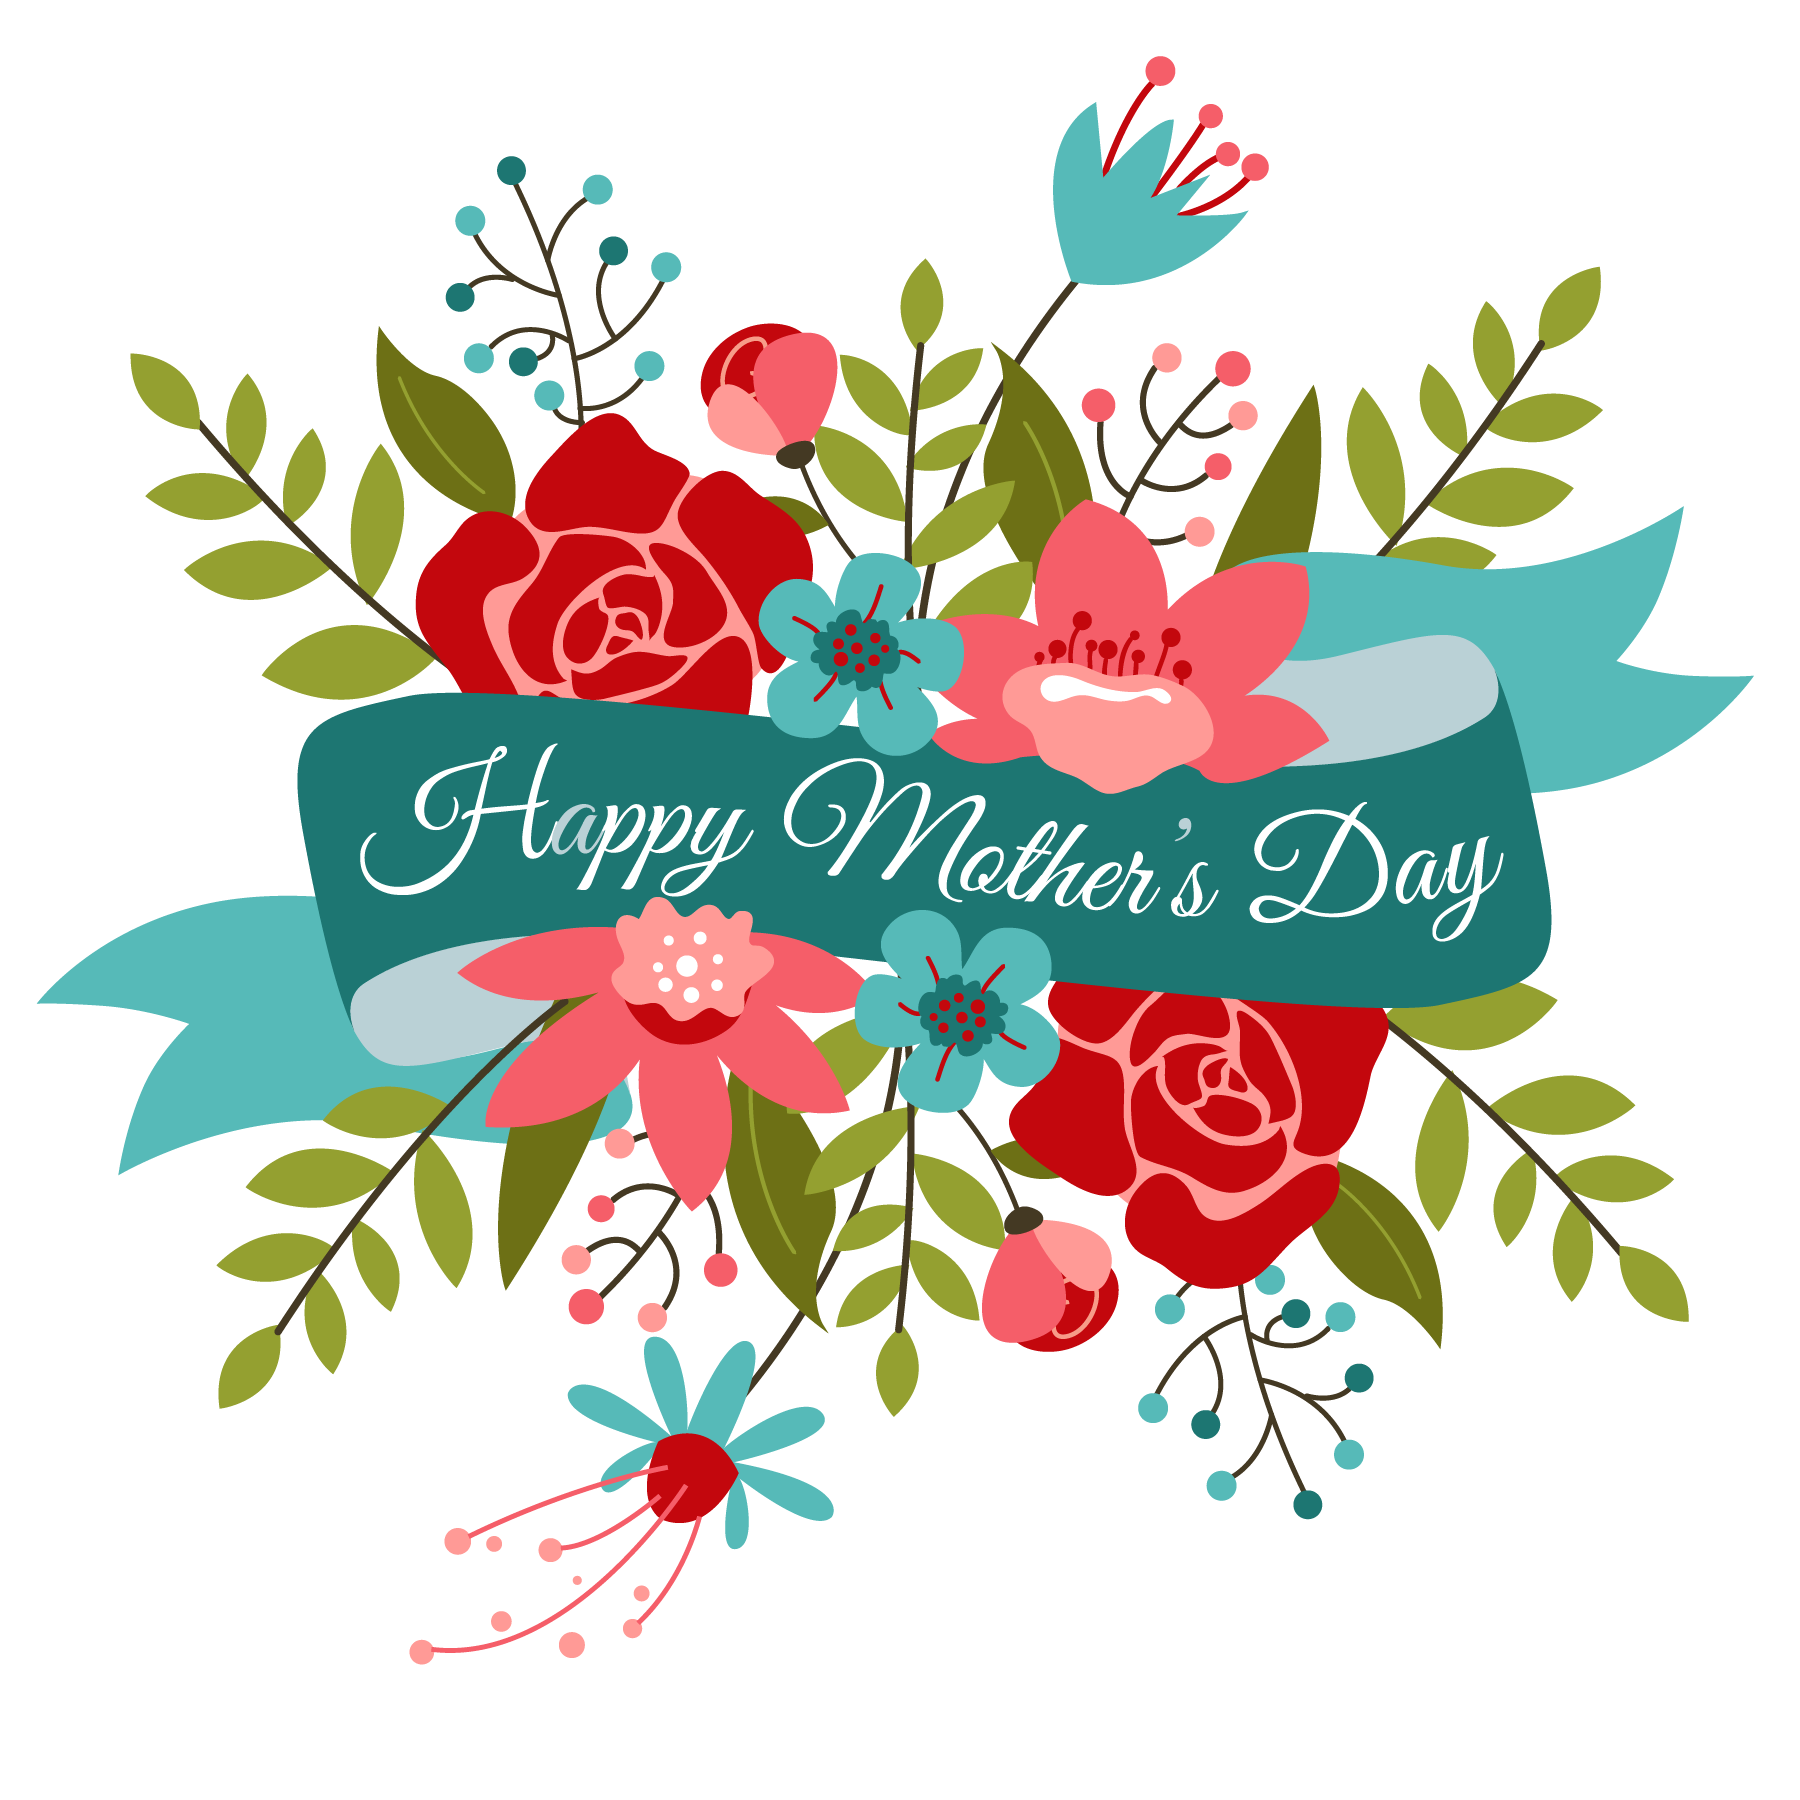 Mothers day free clip art clipart images gallery for free download.